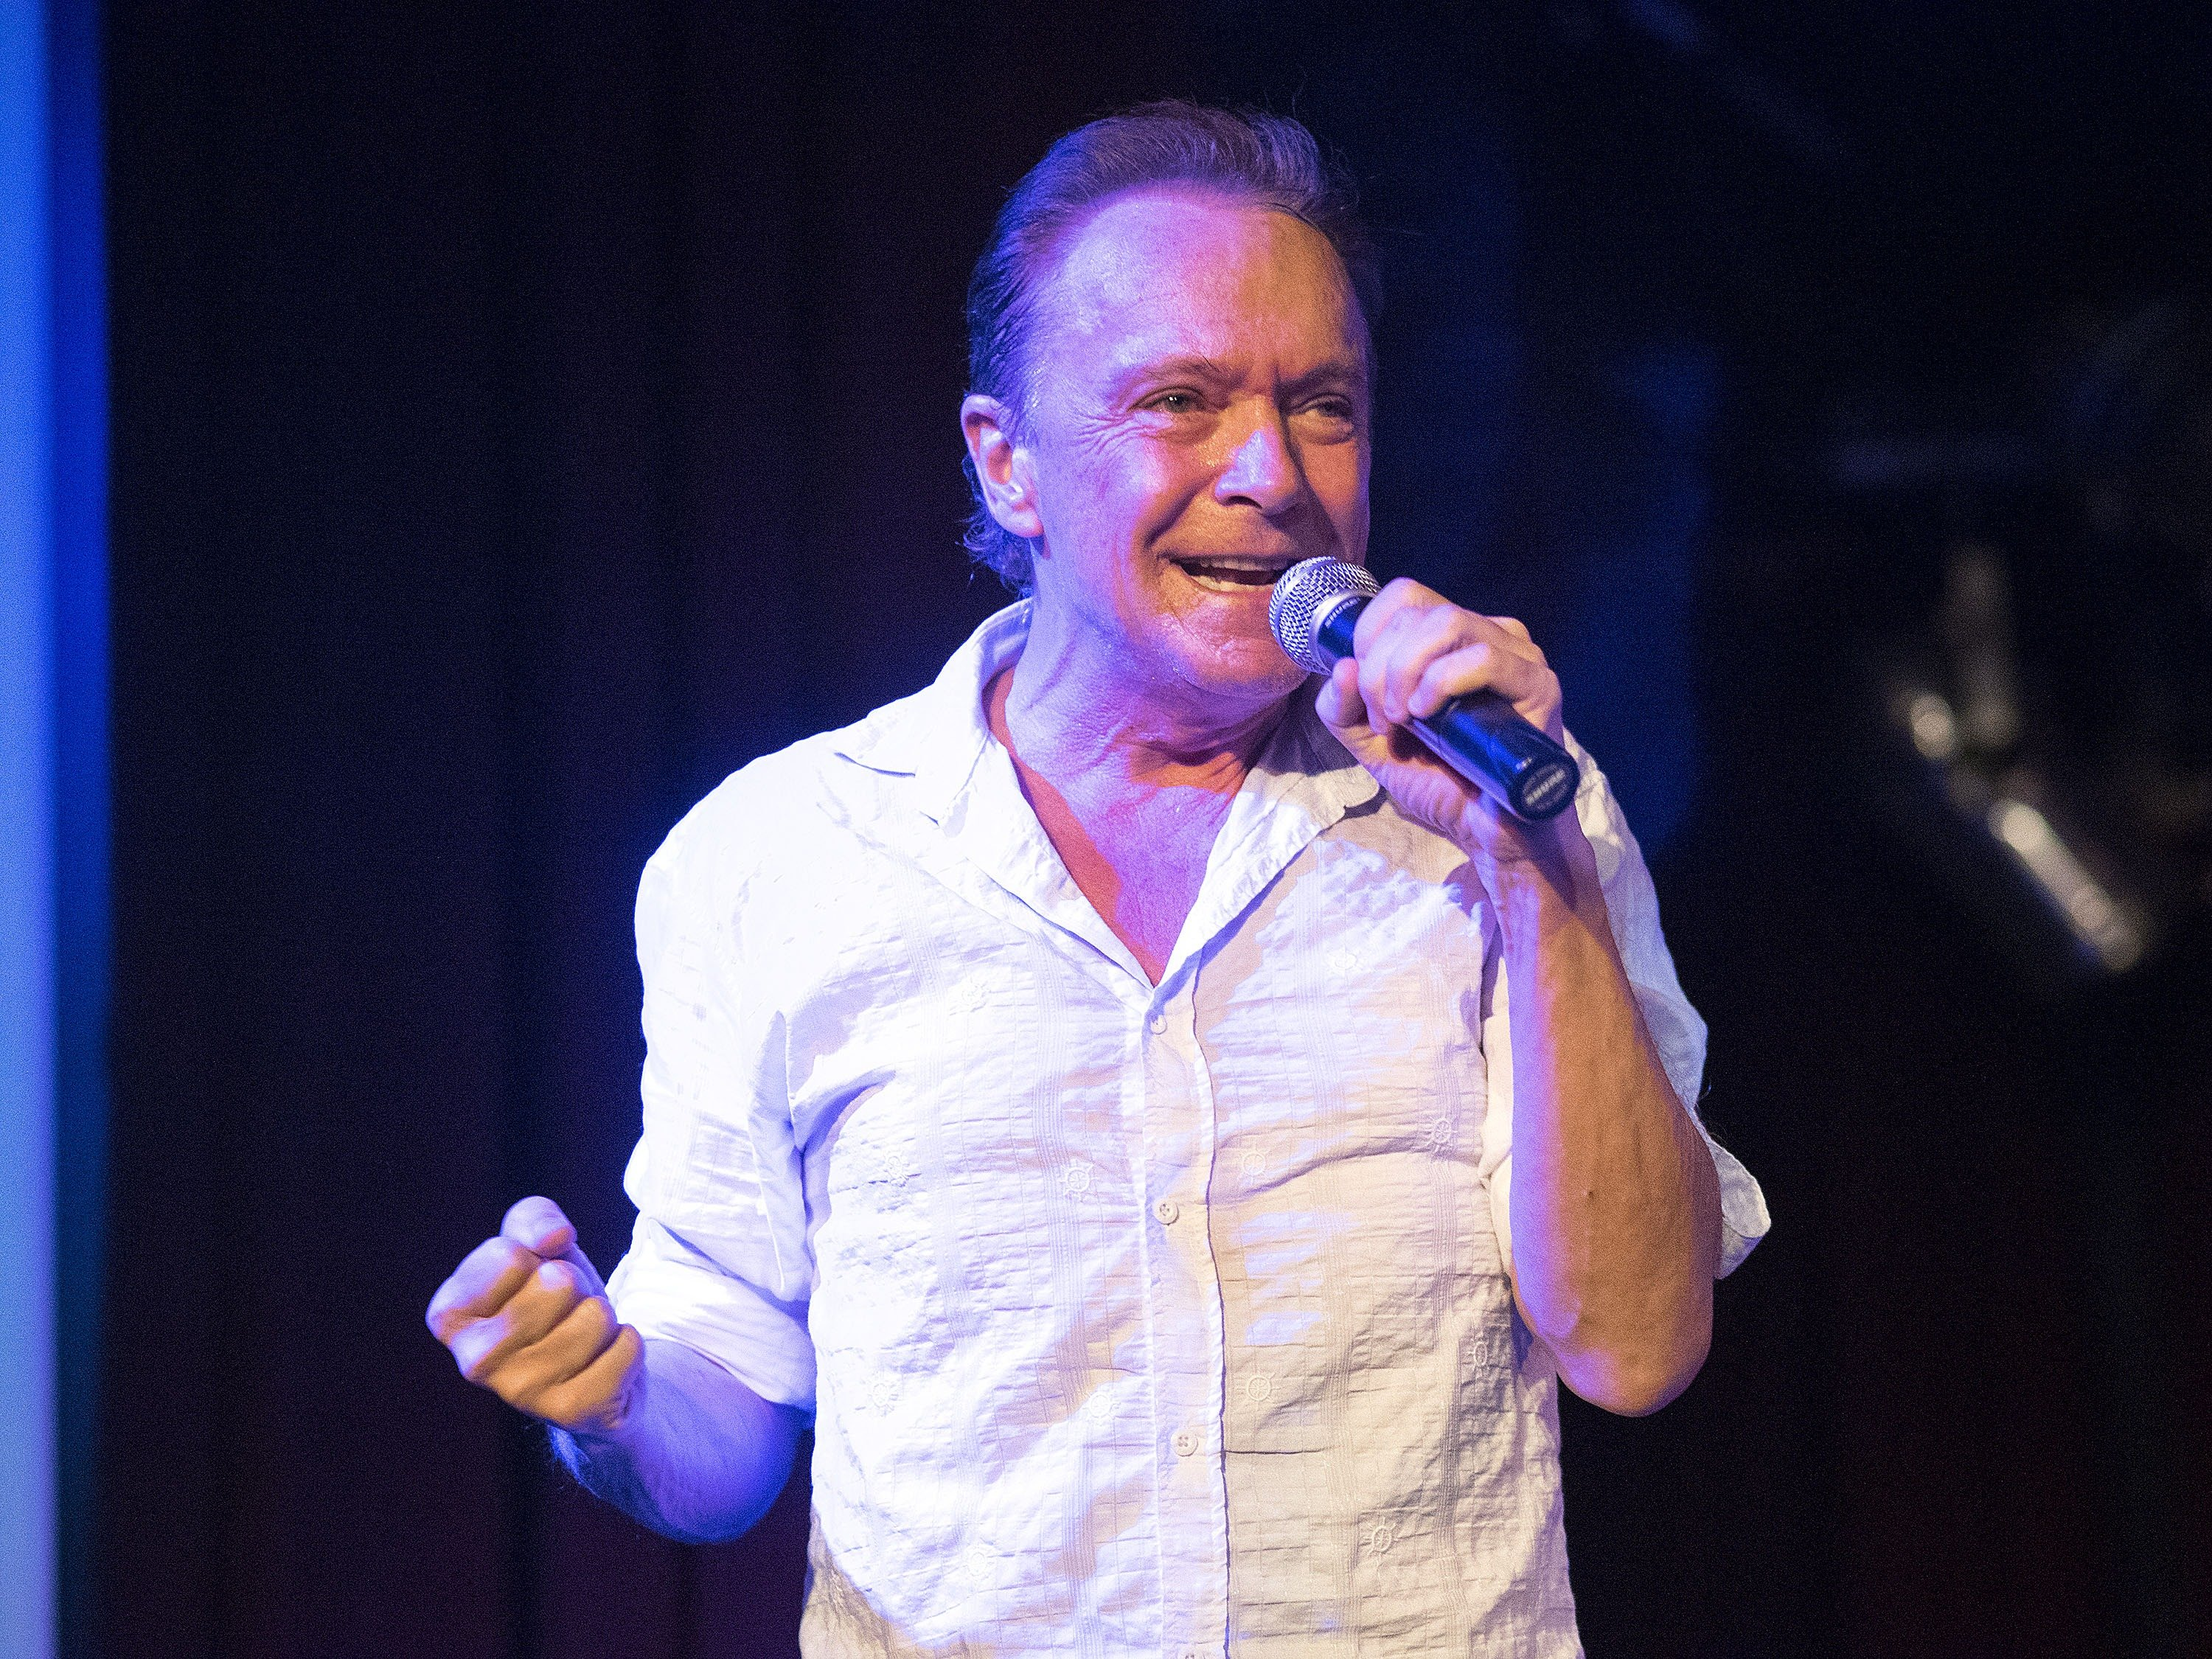 Image Credit: Getty Images / Actor and singer, David Cassidy speaks on stage.